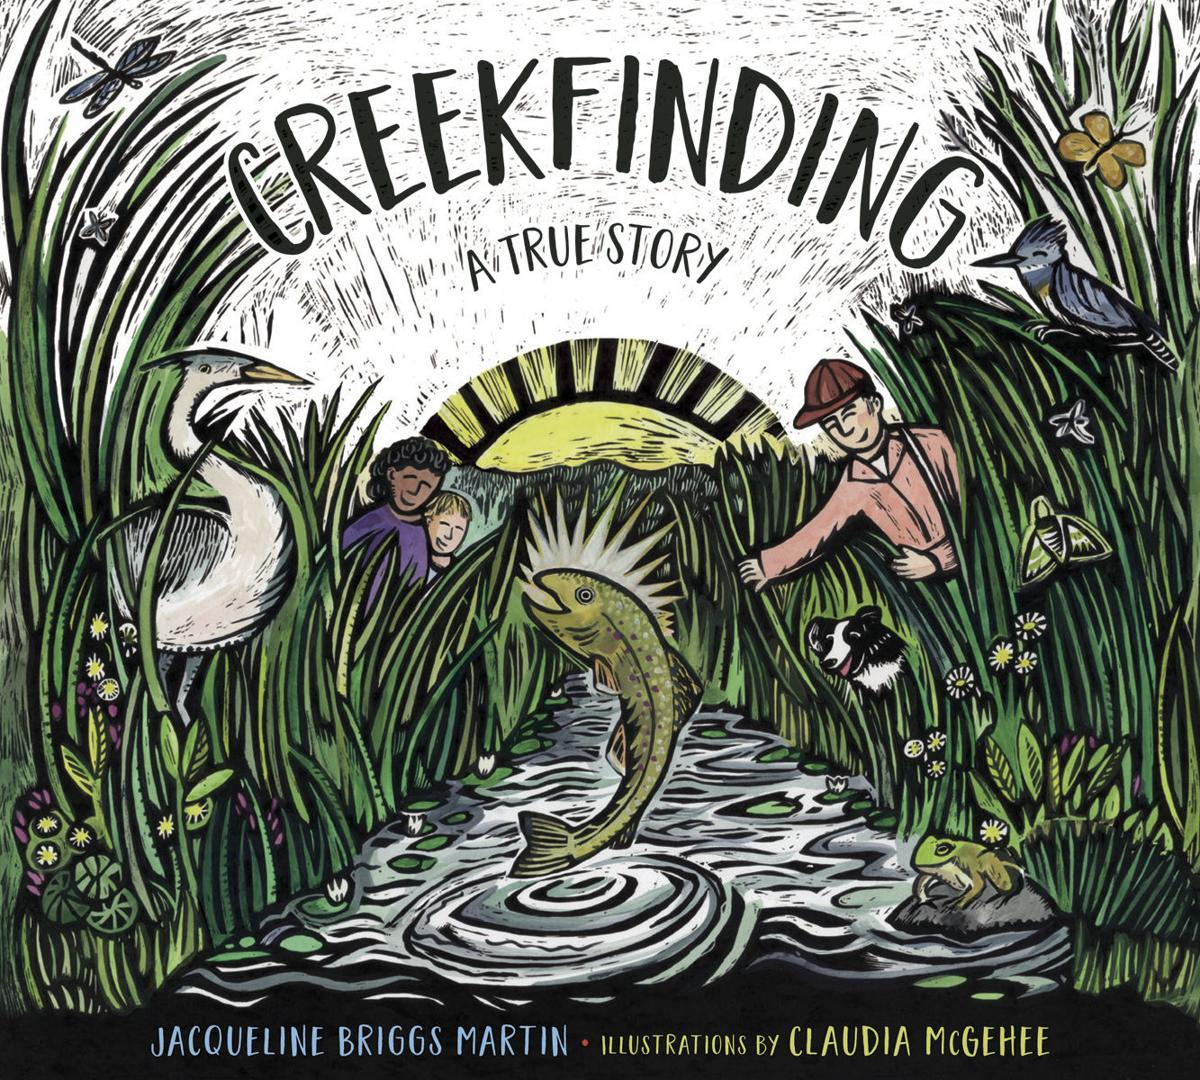 """Creekfinding: A True Story"""